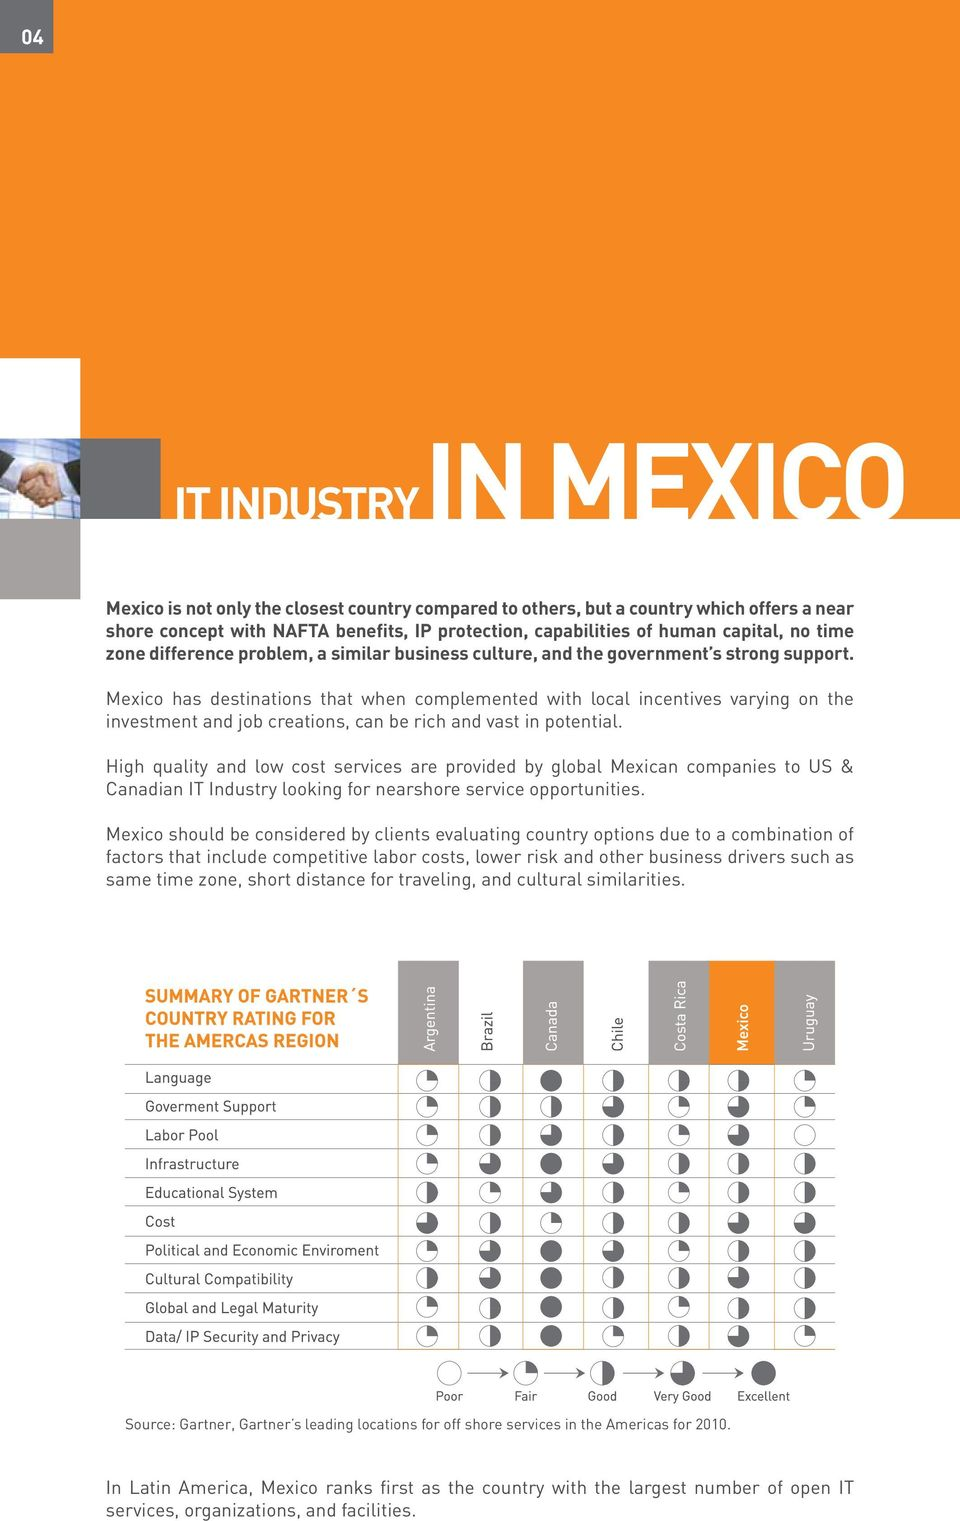 Mexico has destinations that when complemented with local incentives varying on the investment and job creations, can be rich and vast in potential.